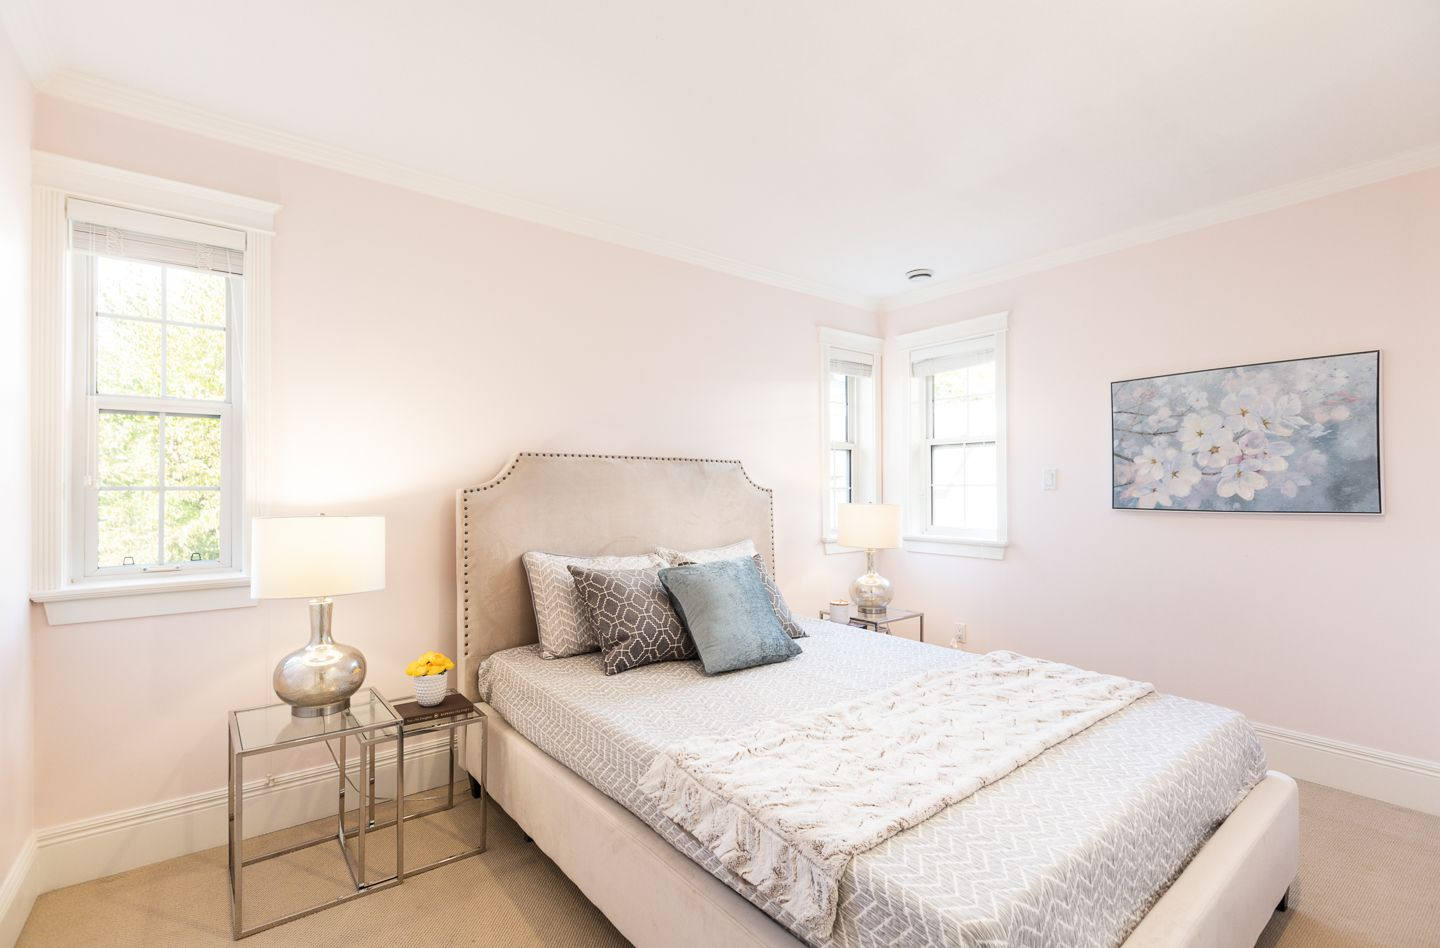 Photo 15: Photos: 2267 WEST 13TH AV in VANCOUVER: Kitsilano 1/2 Duplex for sale (Vancouver West)  : MLS®# R2407976